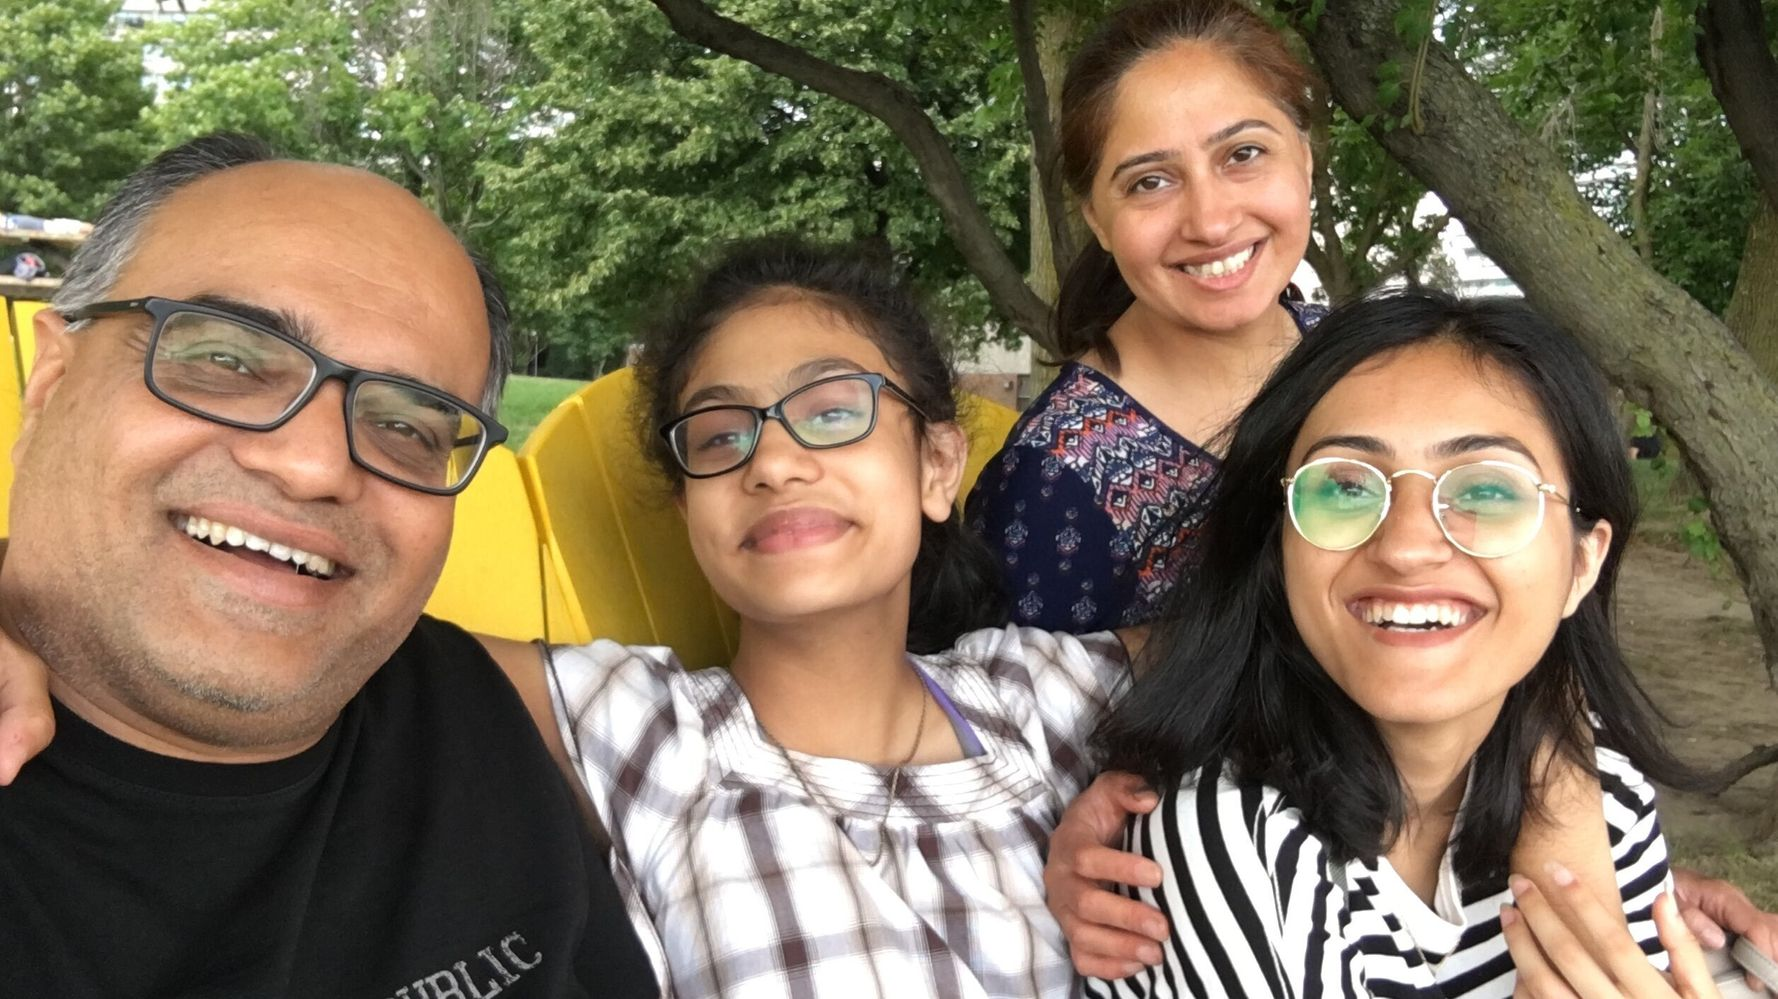 Autism Is Taboo In Our Culture. Our Daughter's Diagnosis Made Us Face It.